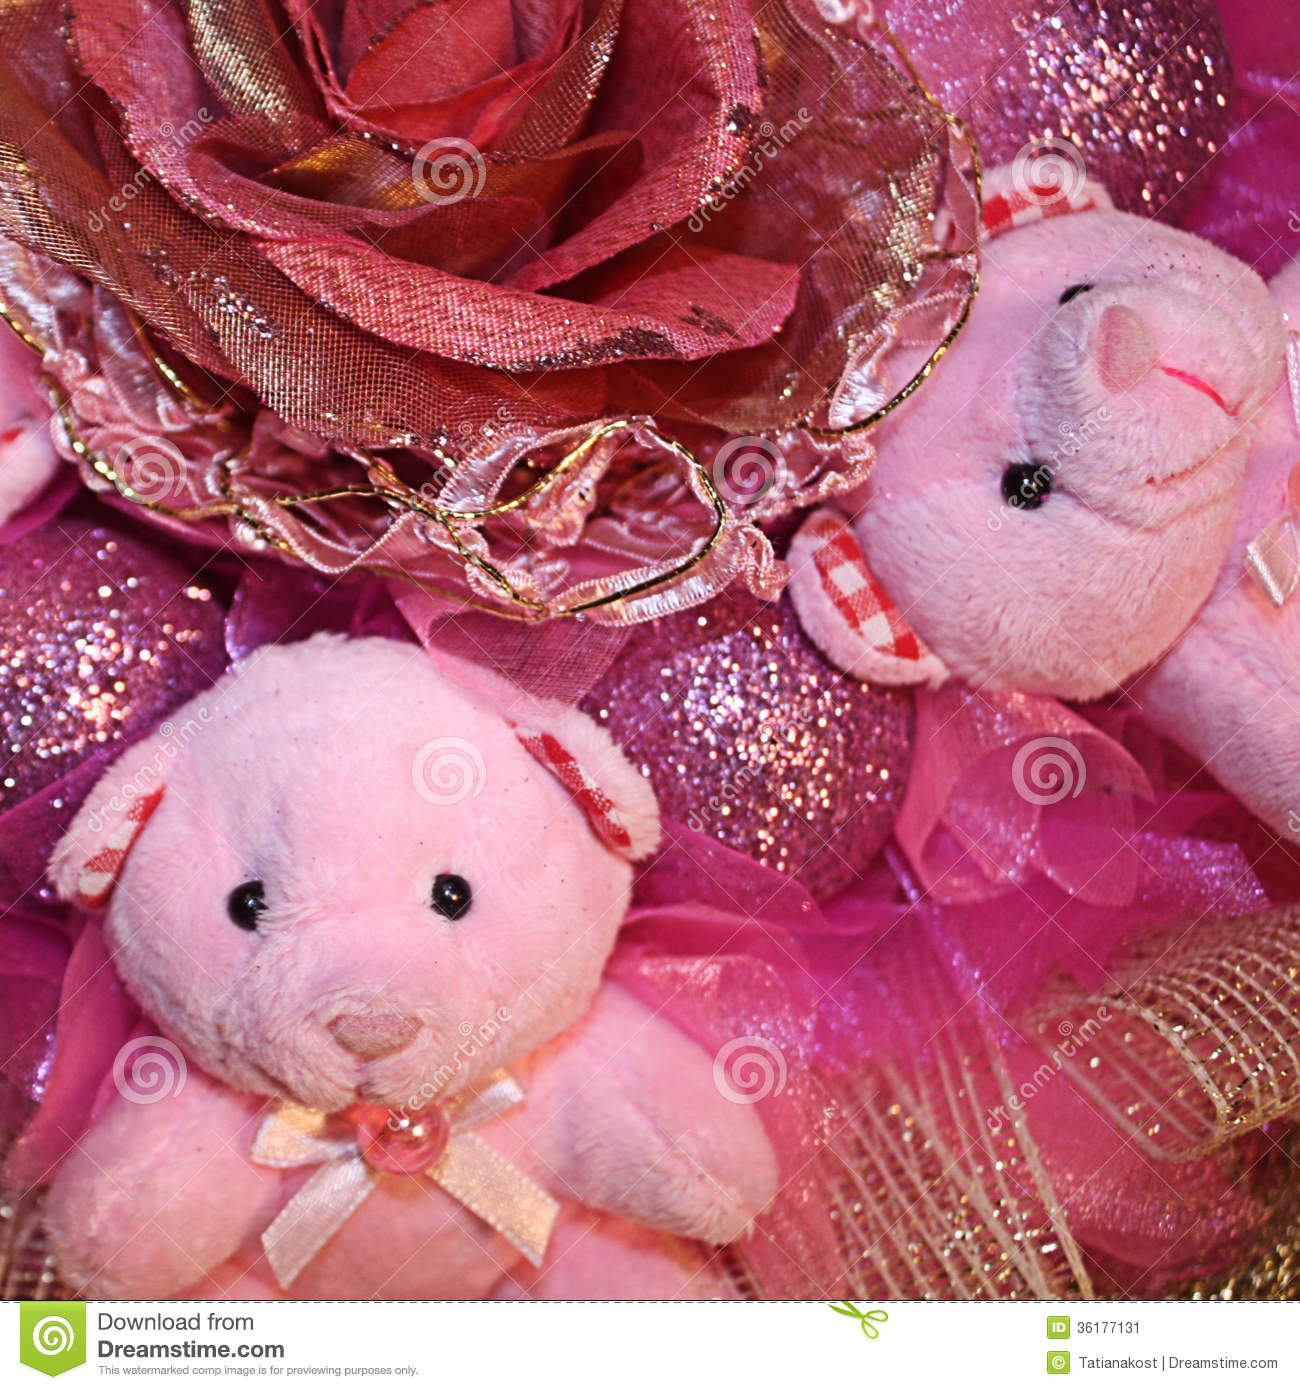 teddy bear pictures with flowers in pink colour